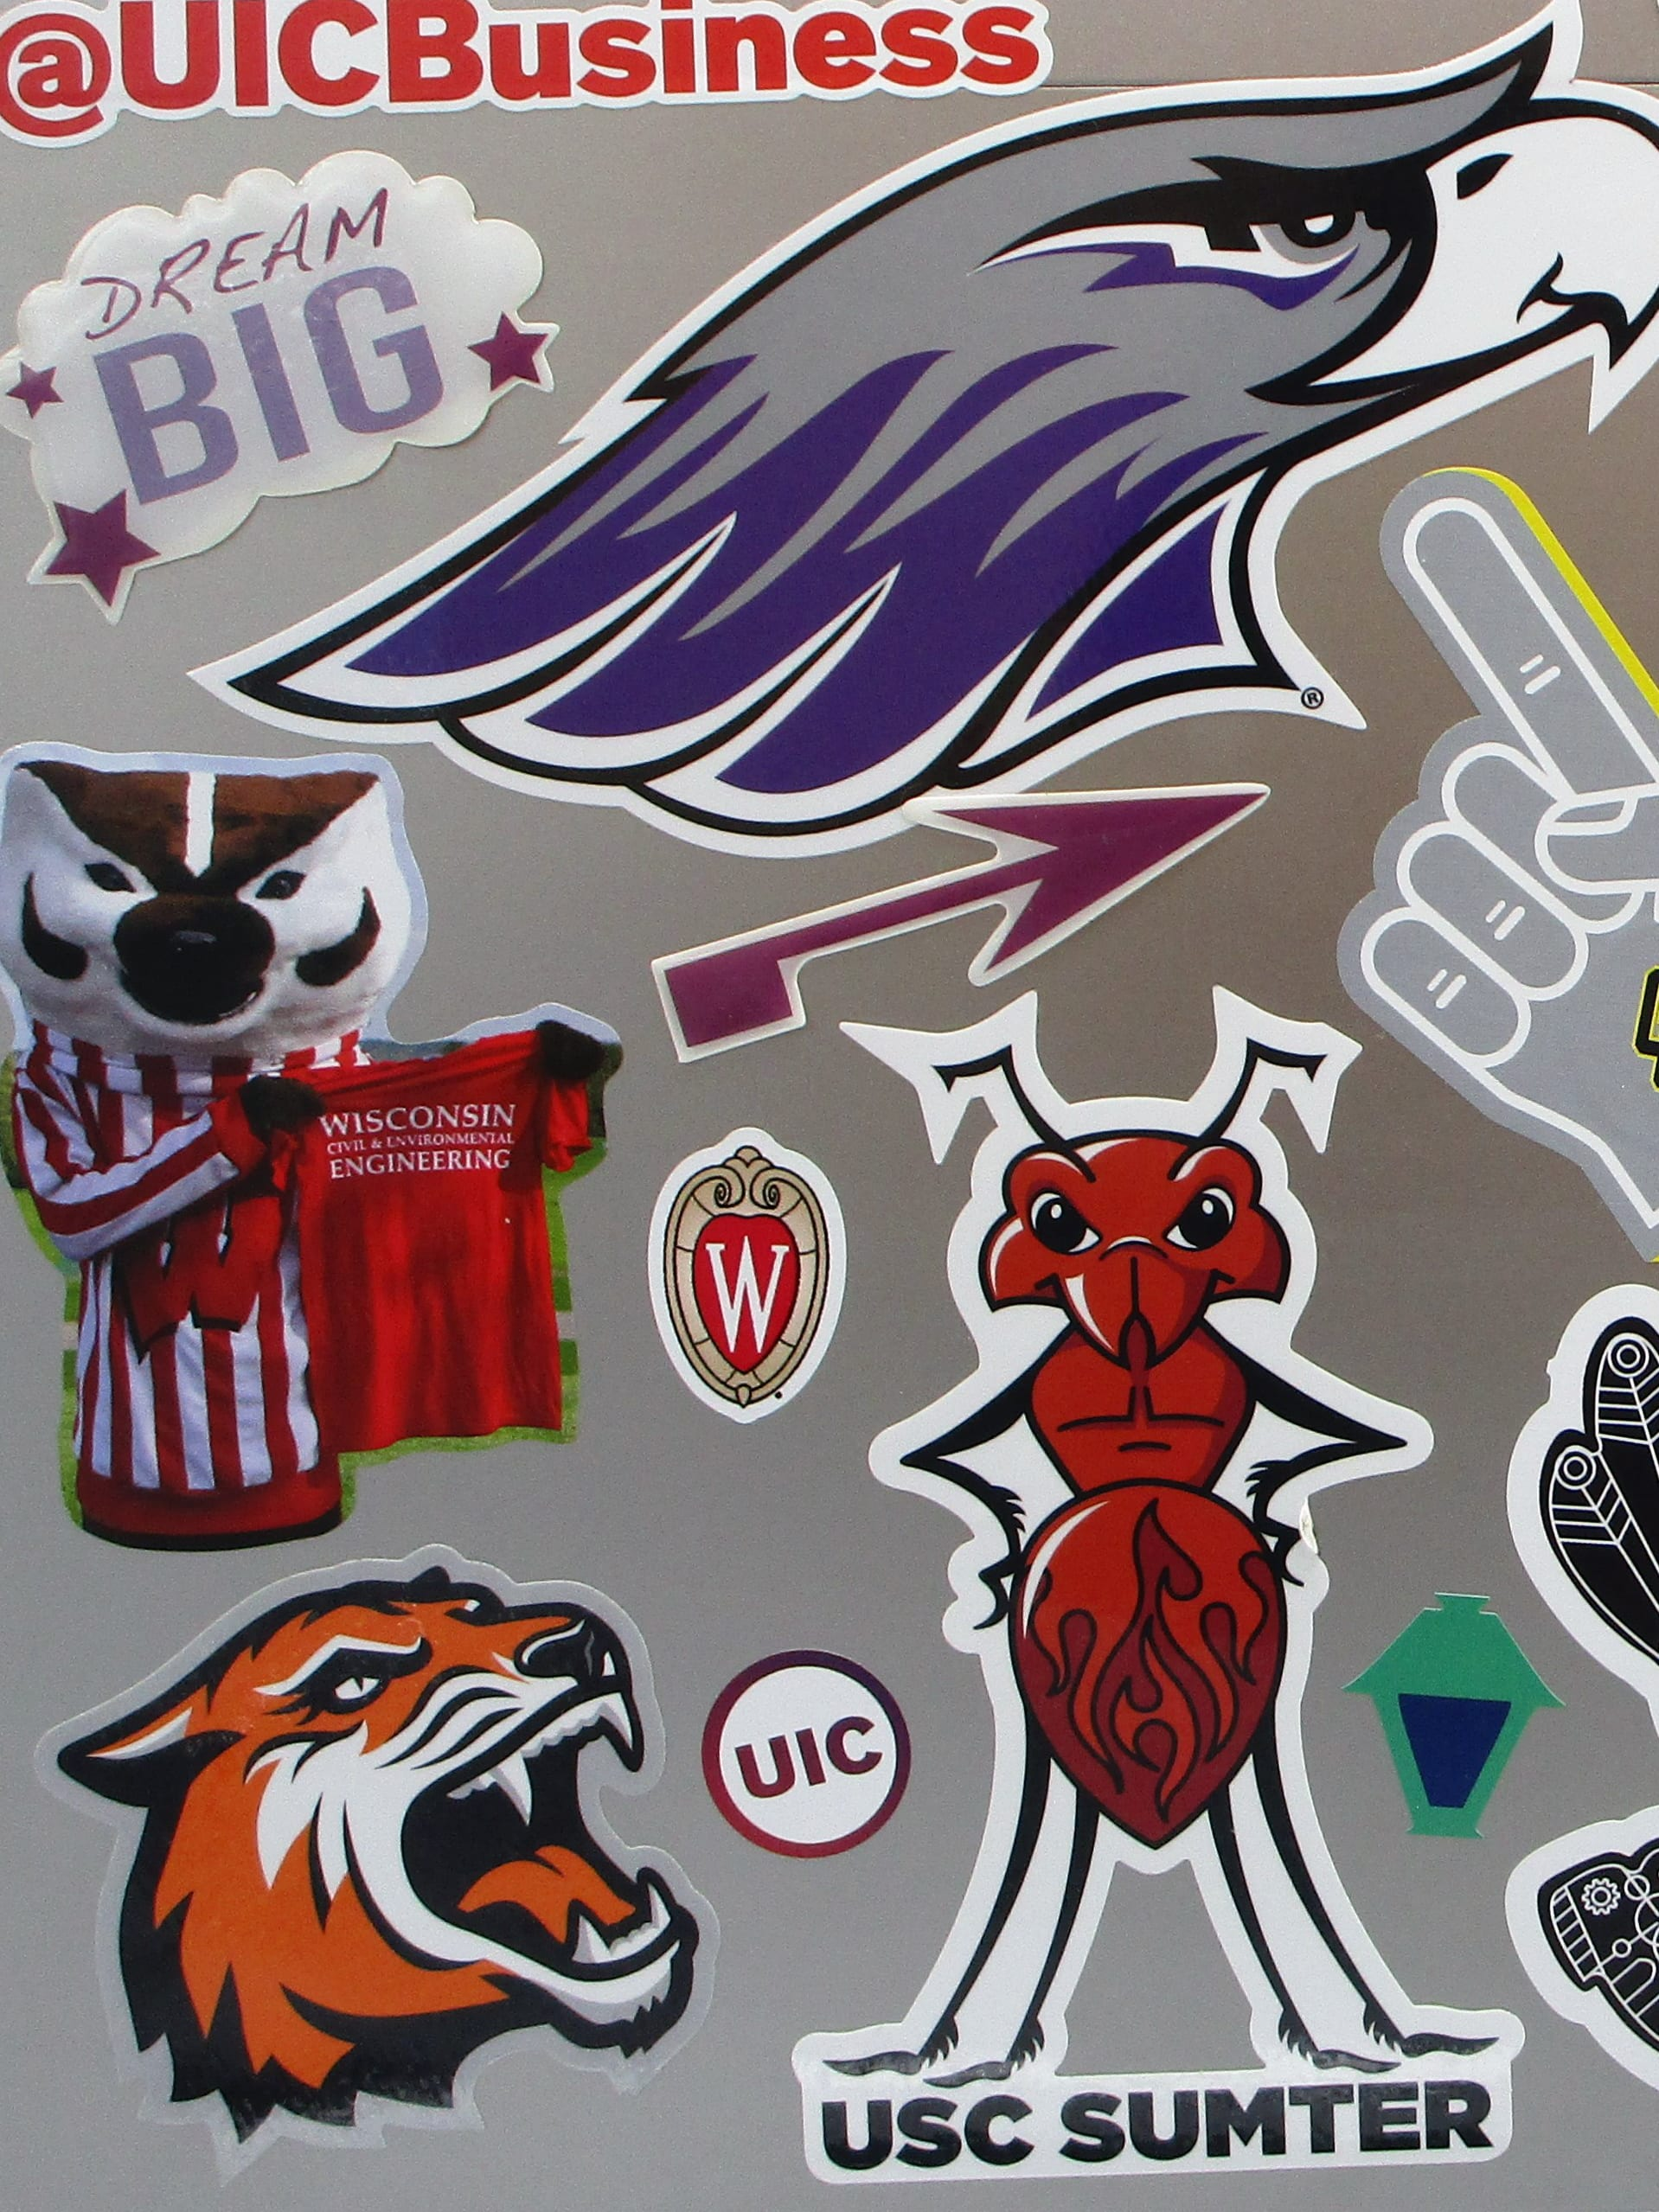 Custom stickers designed by magellan promotions